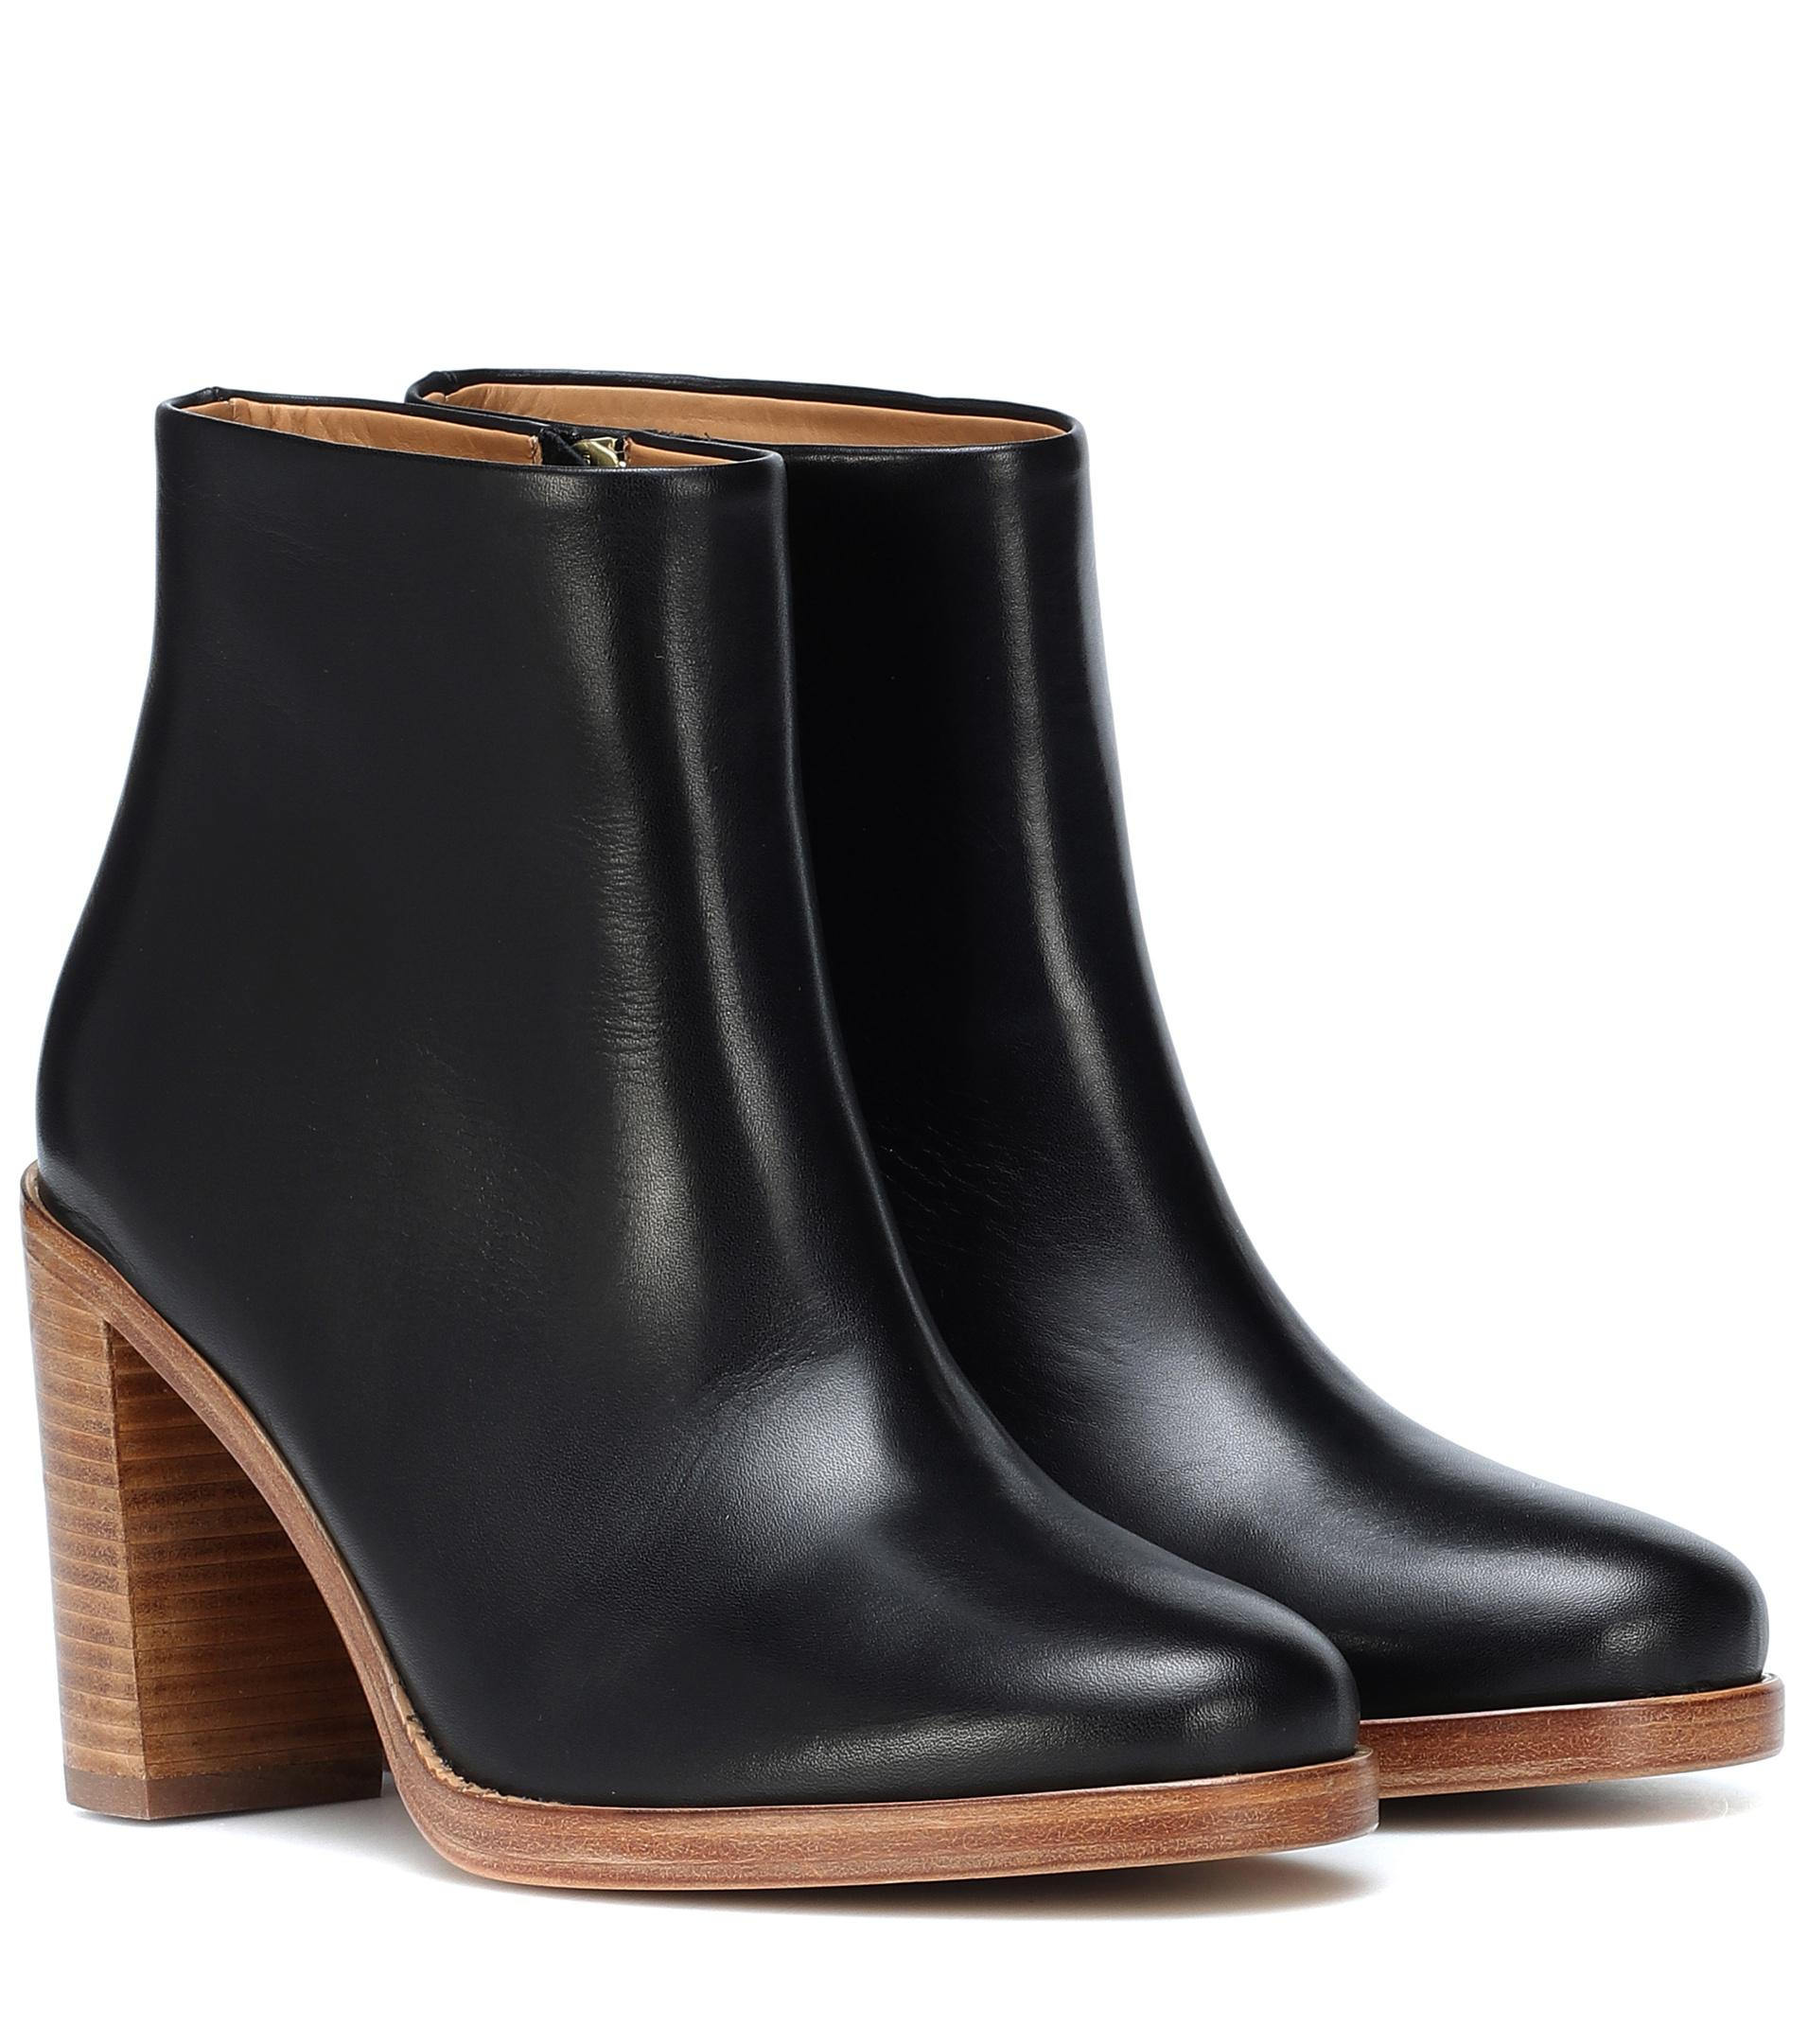 "APC Chic Leather Ankle Boots, Black, Size: 37, gently worn - scuffs on bottom, not on exterior.  Orig. rtl: $530<br /> <br /> ""A perennial silhouette, the Chic ankle boot's understated name says it all. The style from A.P.C. is crafted from smooth black leather with a brown leather sole and a stacked heel – a fuss-free silhouette with endless styling possibilities. Wear yours with everything from maxi-length dresses and long-line coats, to cropped denim and bomber jackets.<br /> <br />     upper: cow leather<br />     sole: leather insole and sole""<br /> <br /> Photo and description credits: myresa.com"